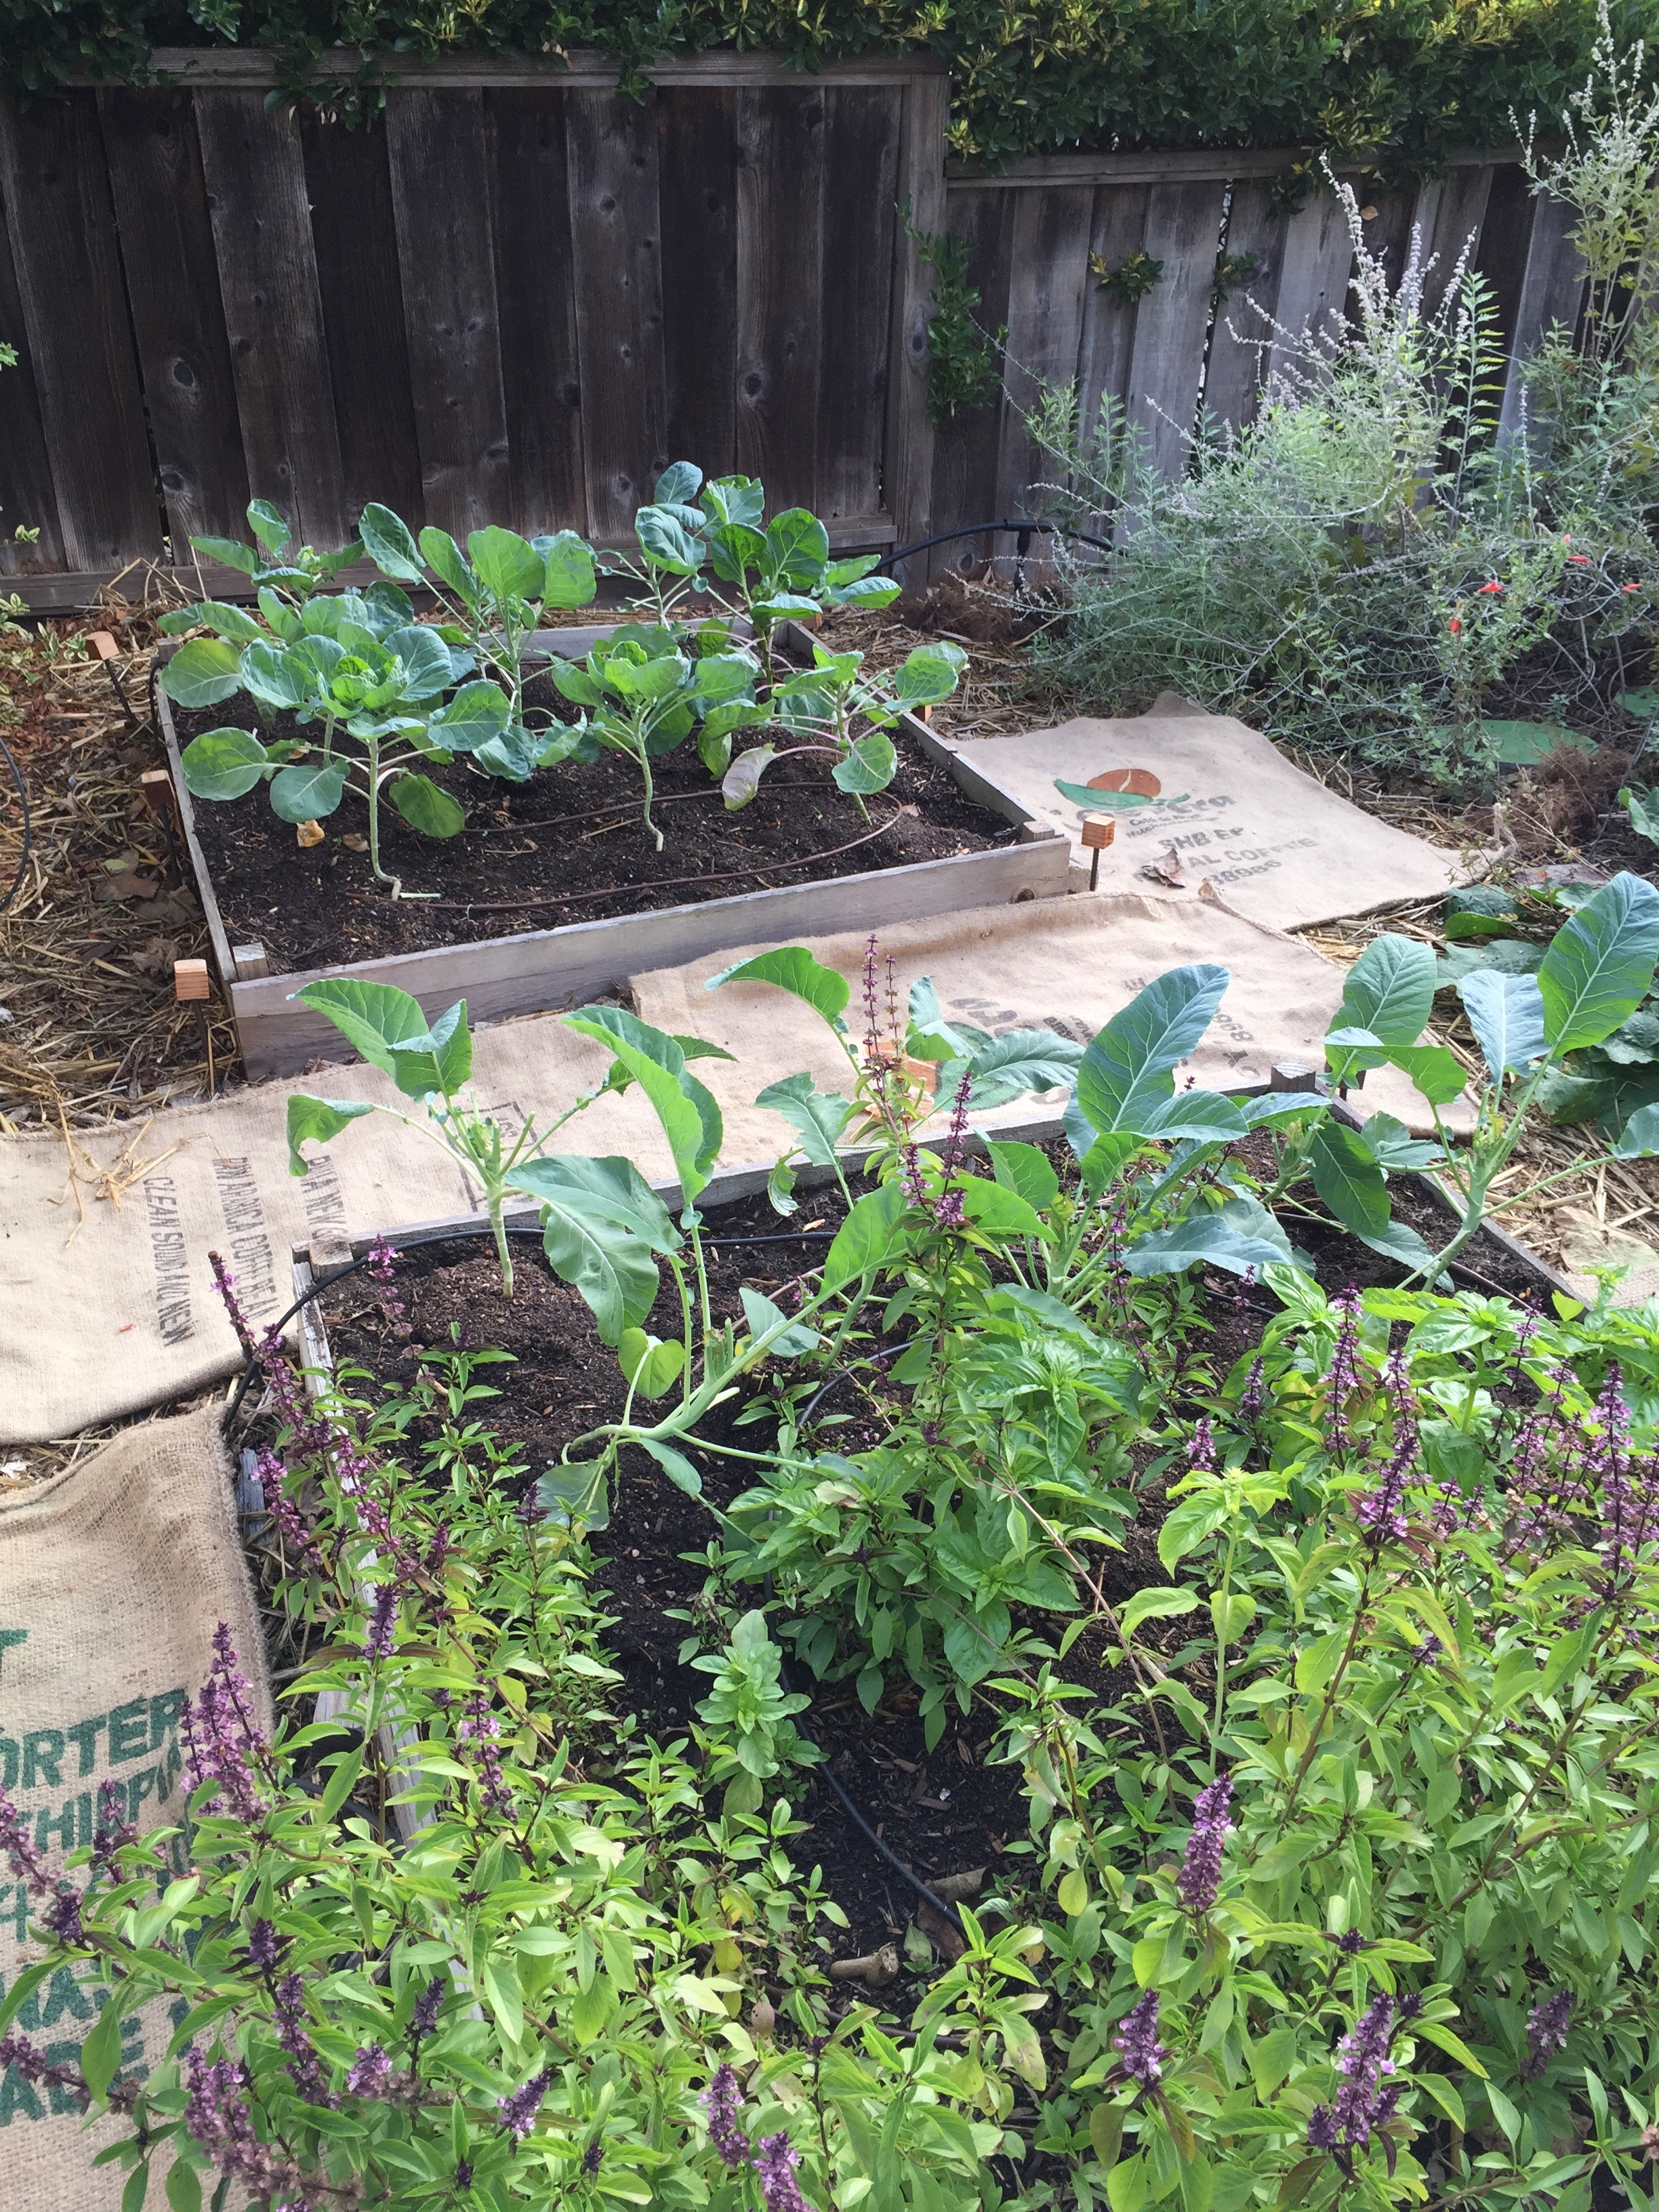 Brussels sprouts in the back, cauliflower (probably hopeless at this point) in with the still-flowering Thai basil. You can see I've been lining the paths with burlap bags from the coffee roastery - I intend to cover these bags with leaves from ours and my neighbors trees, to prevent weeds from coming up between the beds.